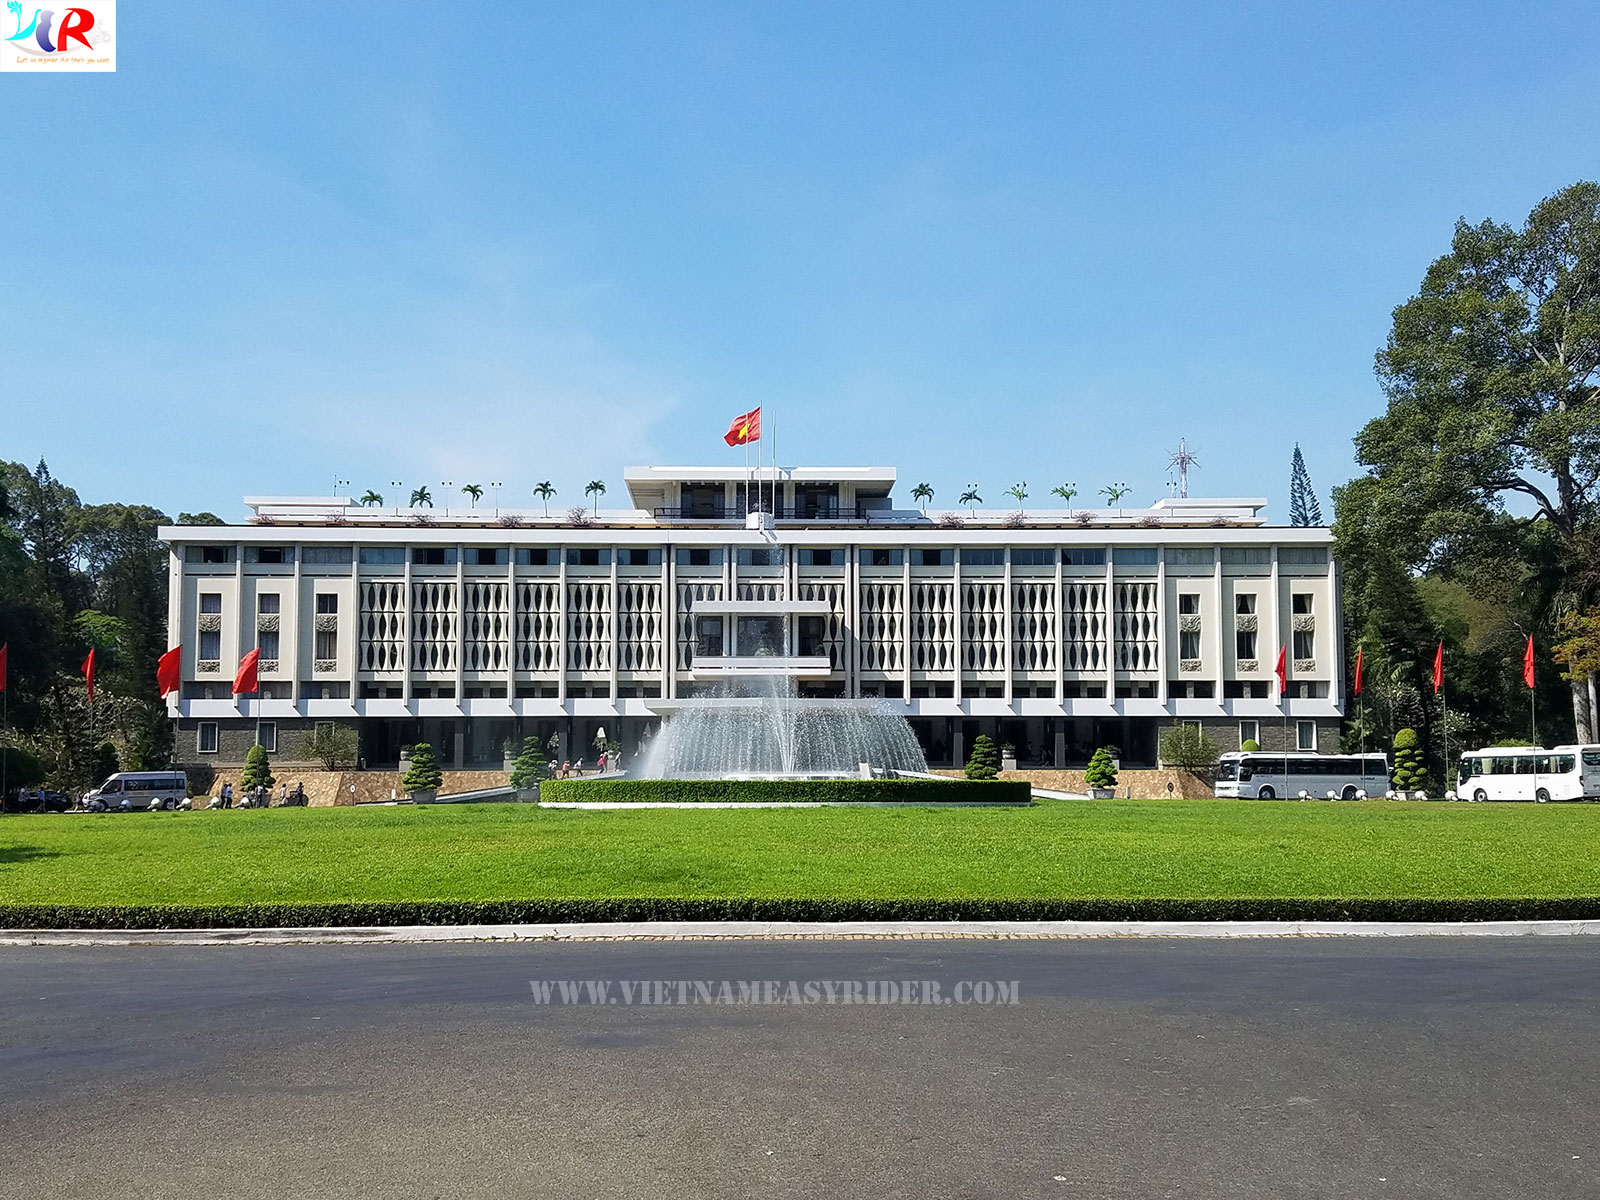 The Reunification Palace (Independence Palace), Saigon